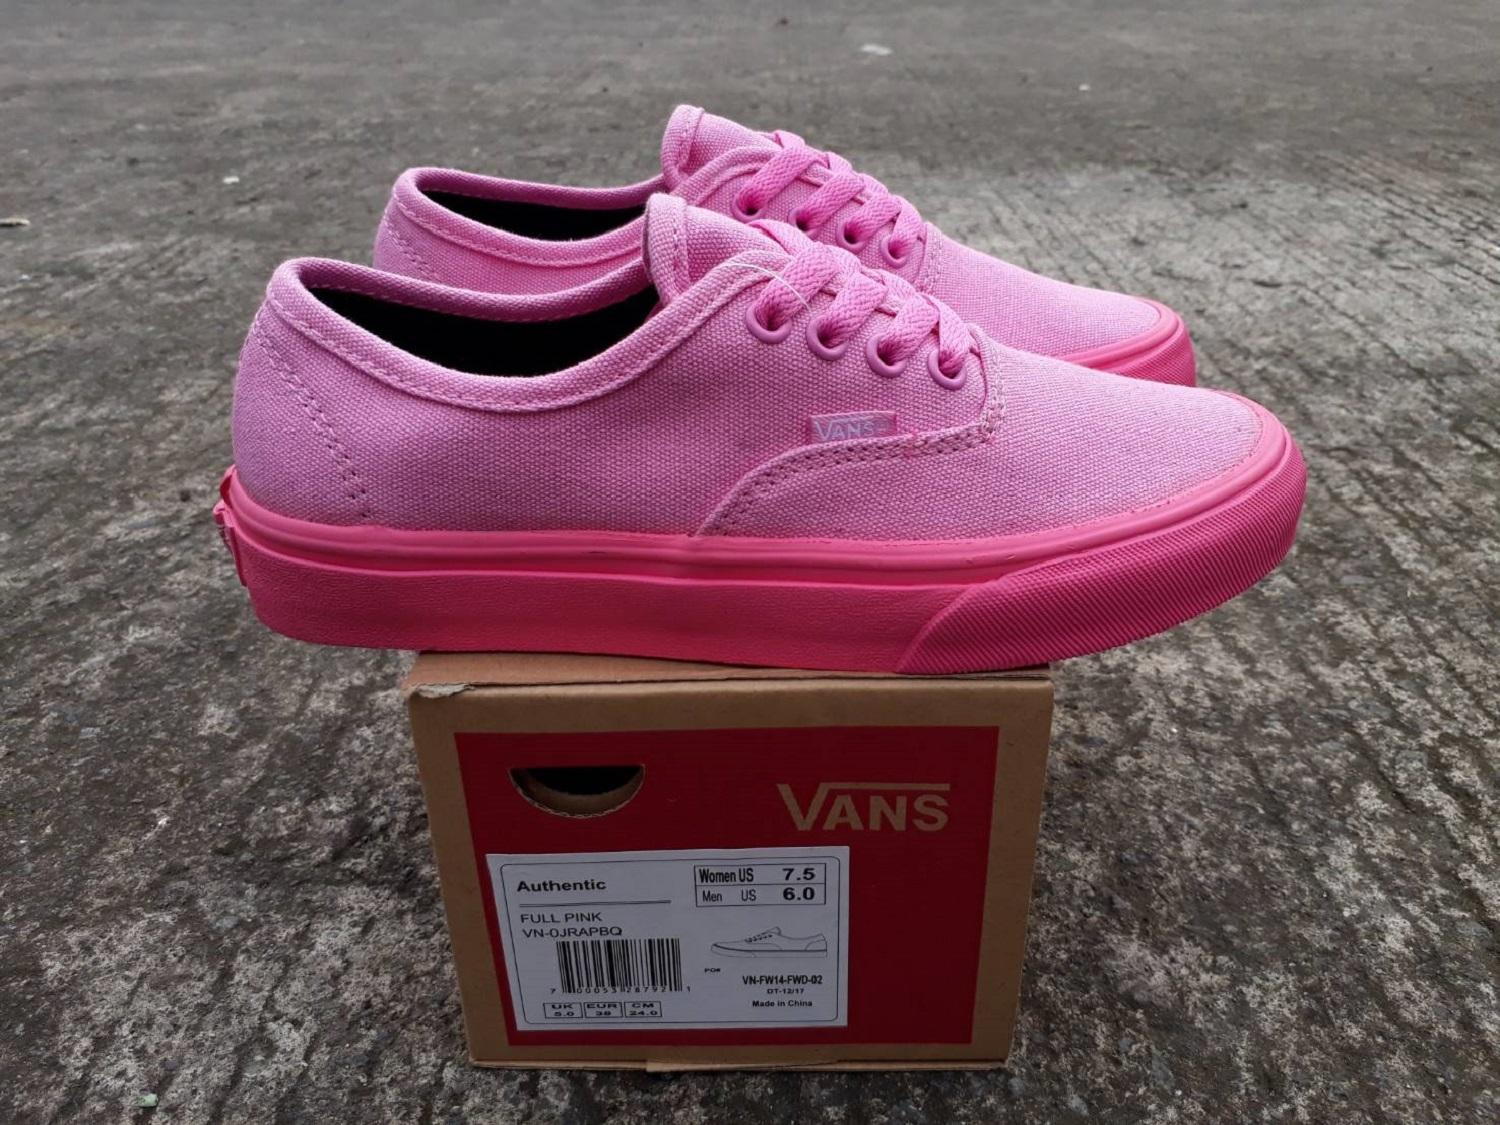 vns authentic full pink wafle dt